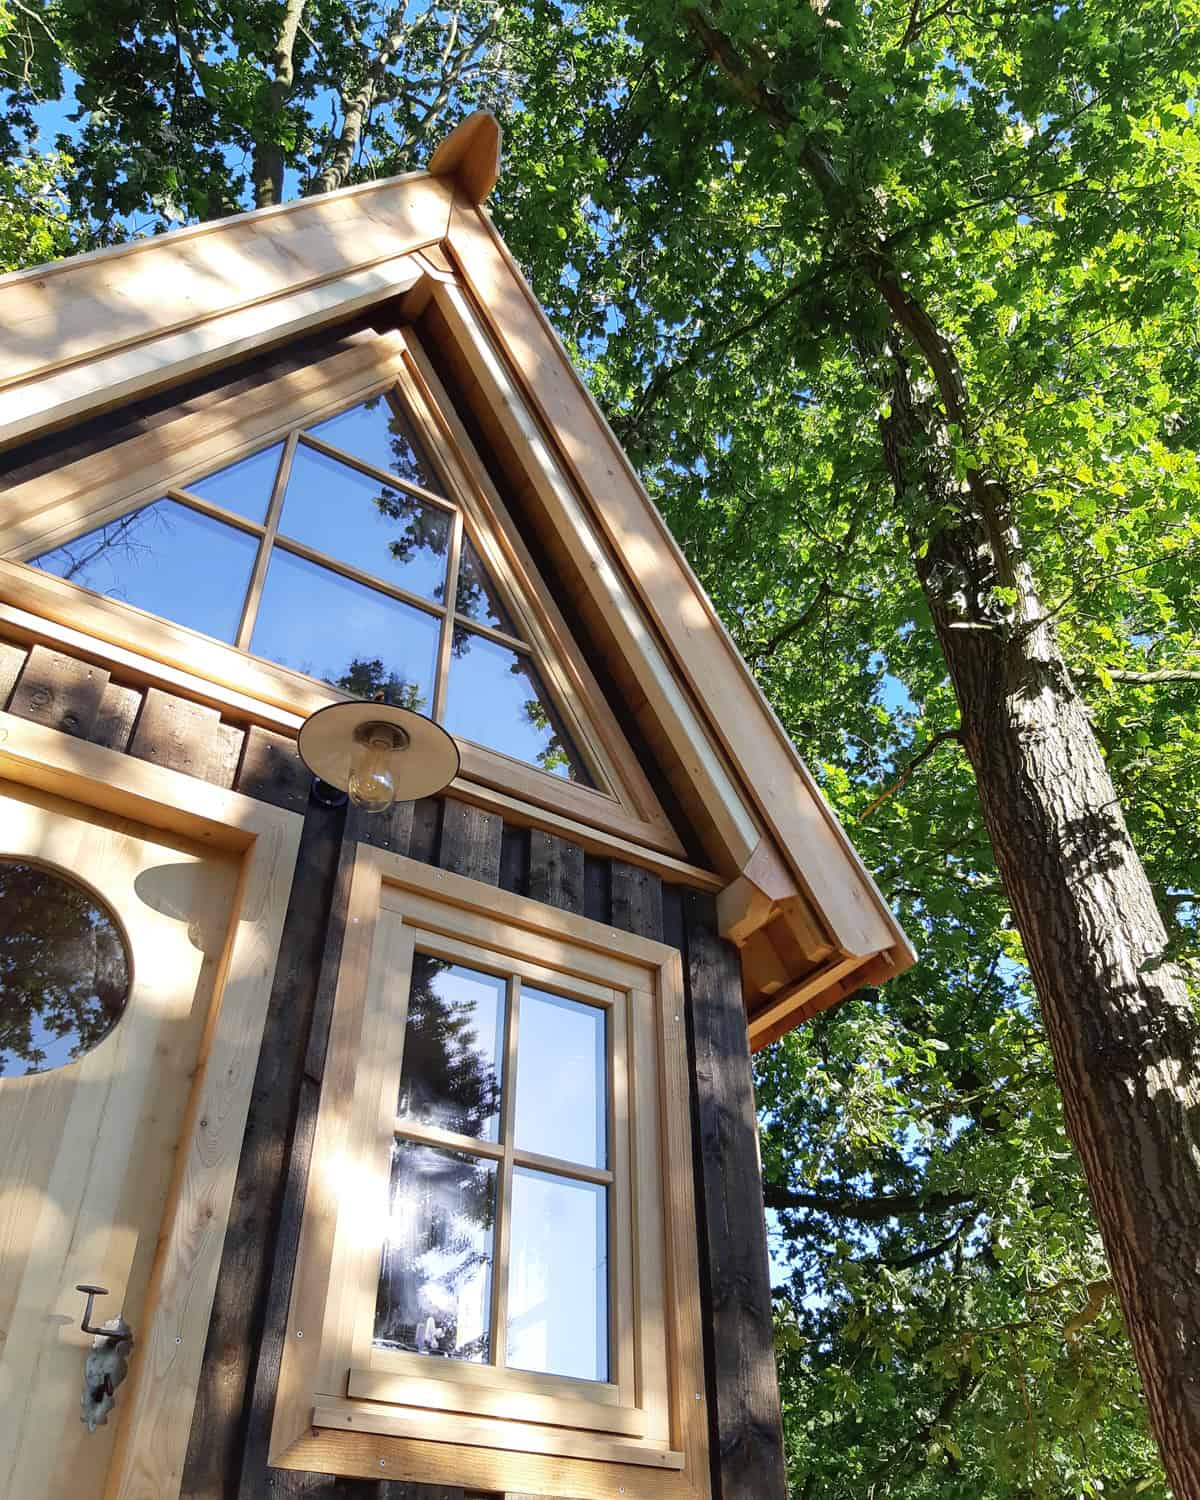 treehouse to live in a beautiful home made by Baumbaron